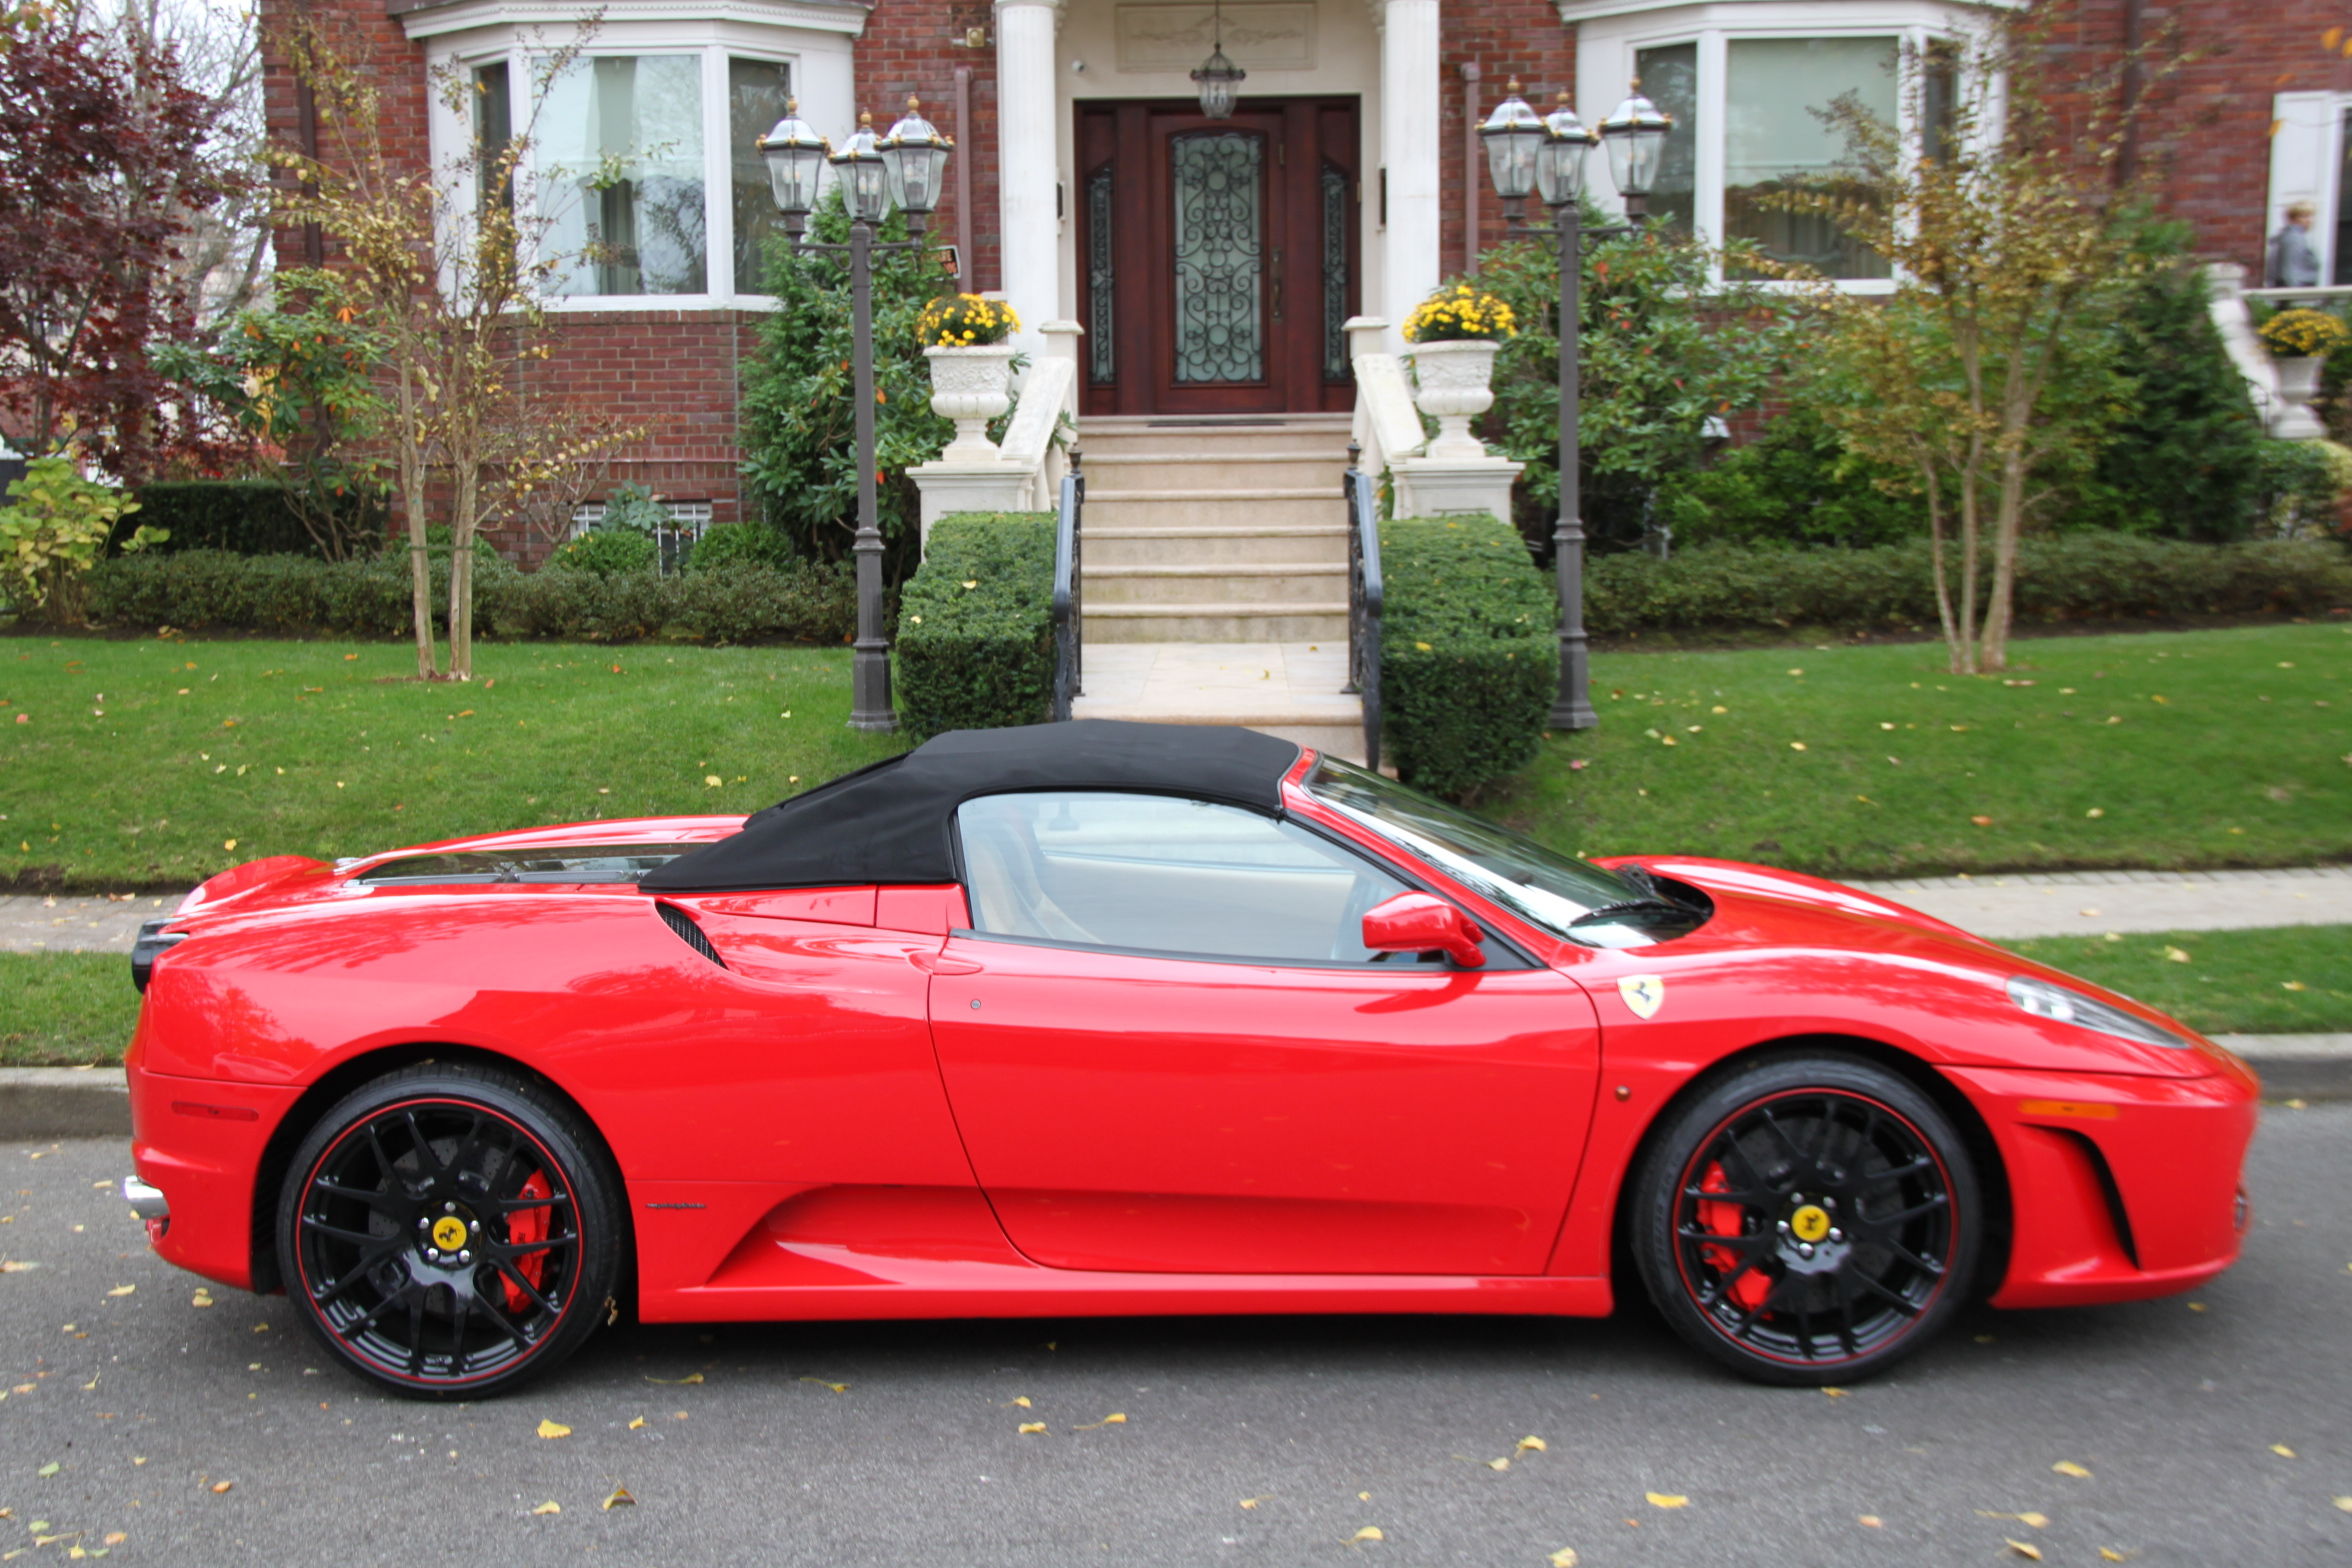 Buy Used 2006 Ferrari F430 Spider For 114 900 From Trusted Dealer In Brooklyn Ny